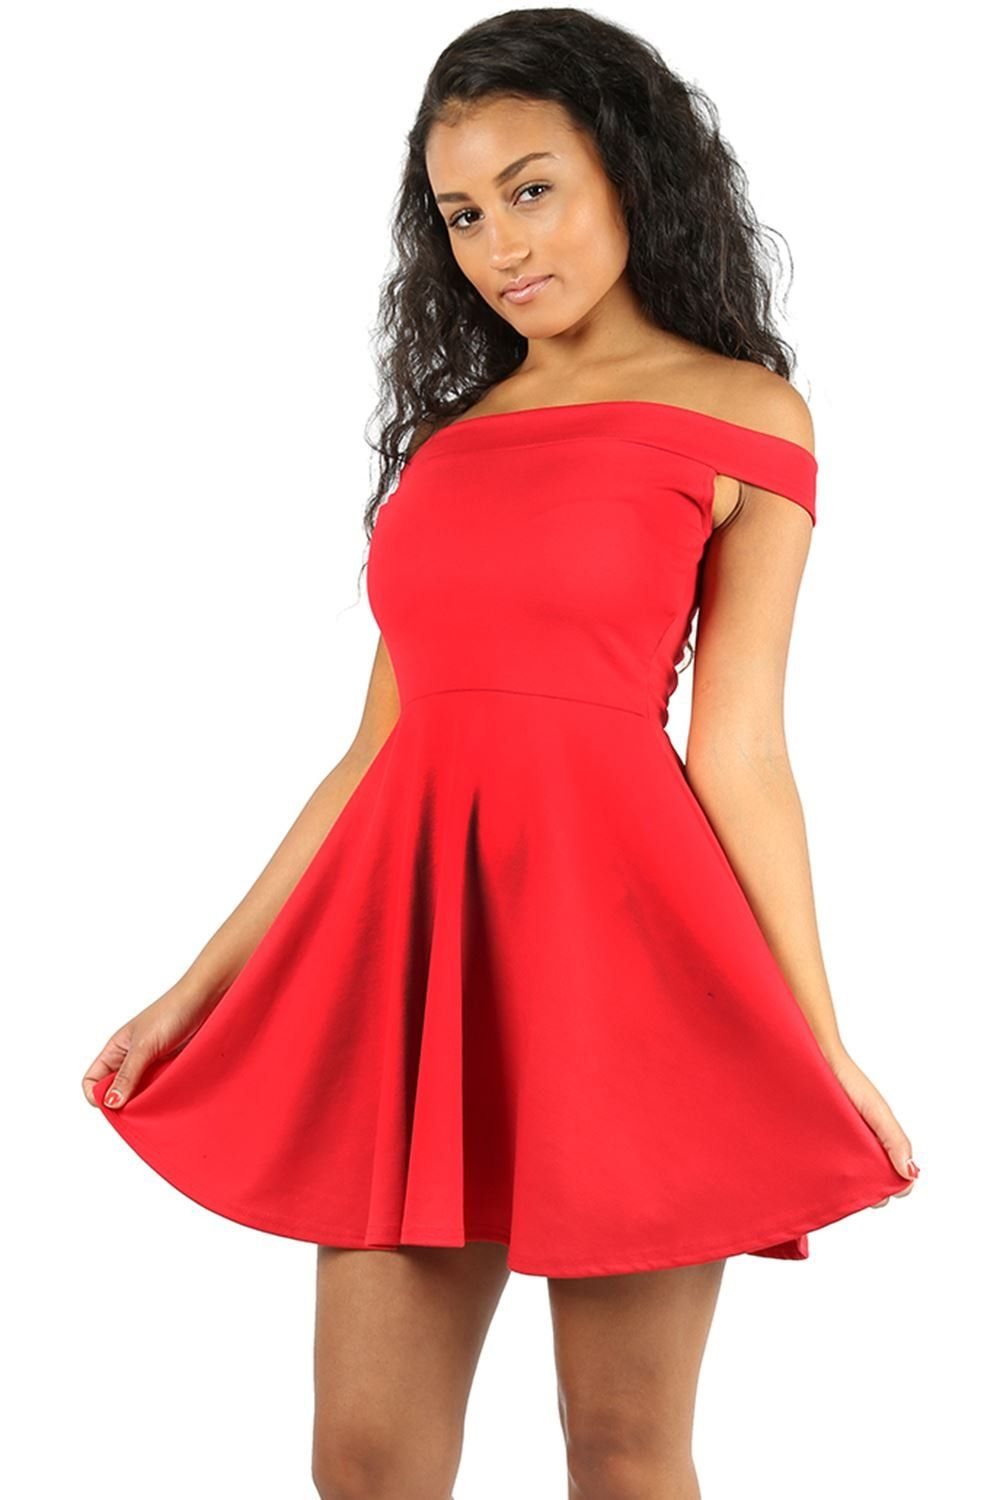 Oops outlet womens off shoulder flared bardot swing party mini